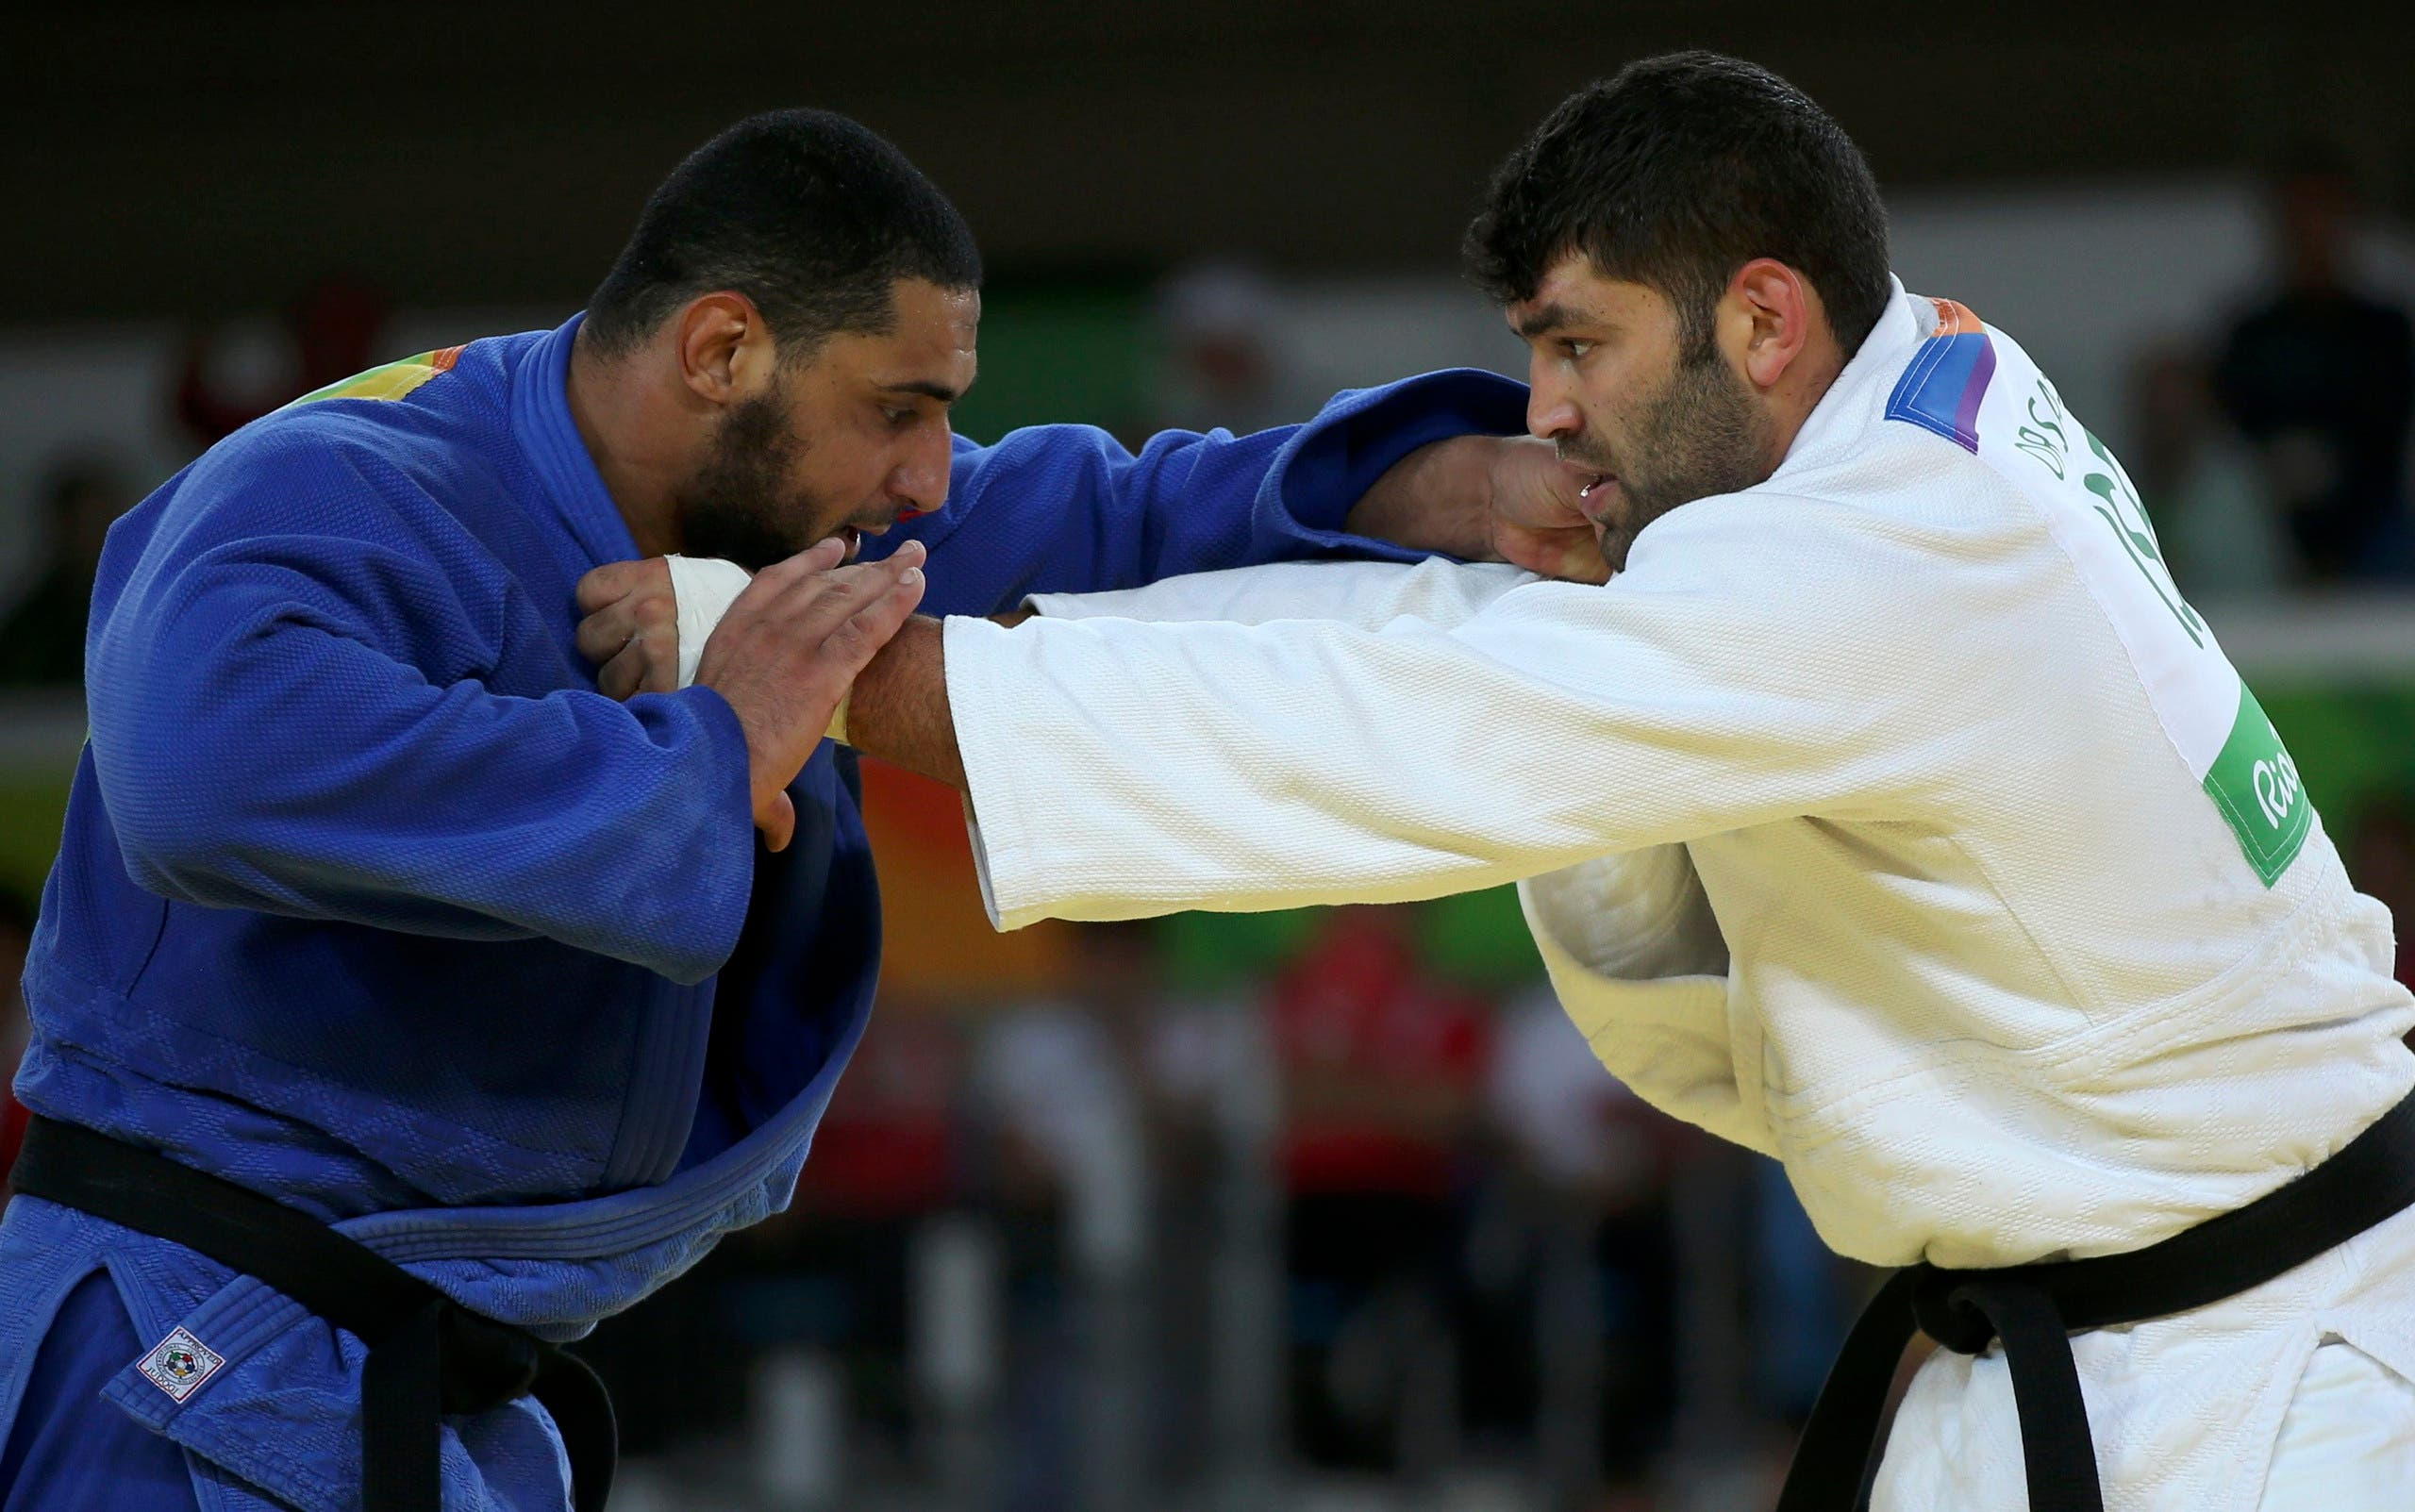 Or Sasson (ISR) of Israel and Islam El Shehaby (EGY) of Egypt compete. REUTERS